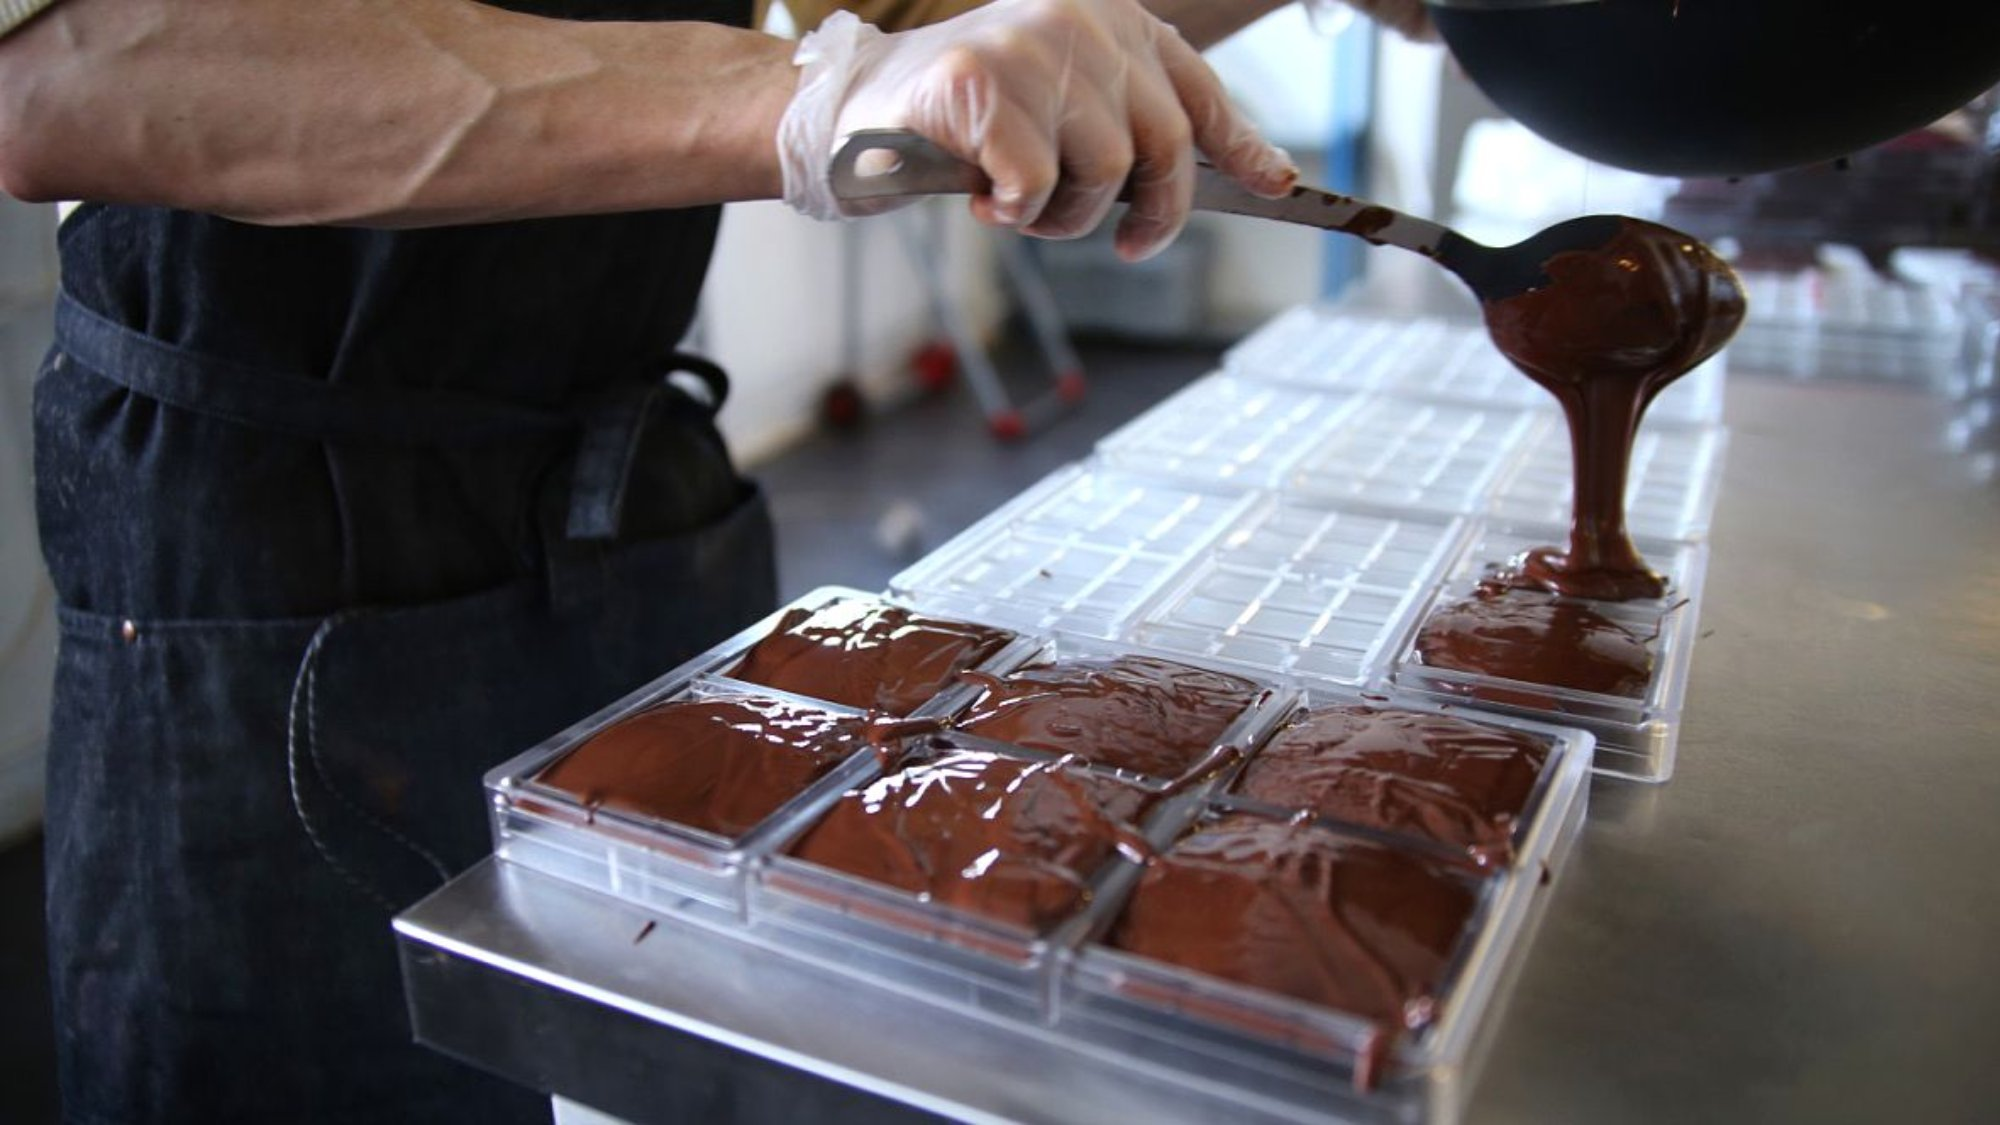 raw chocolate products in making